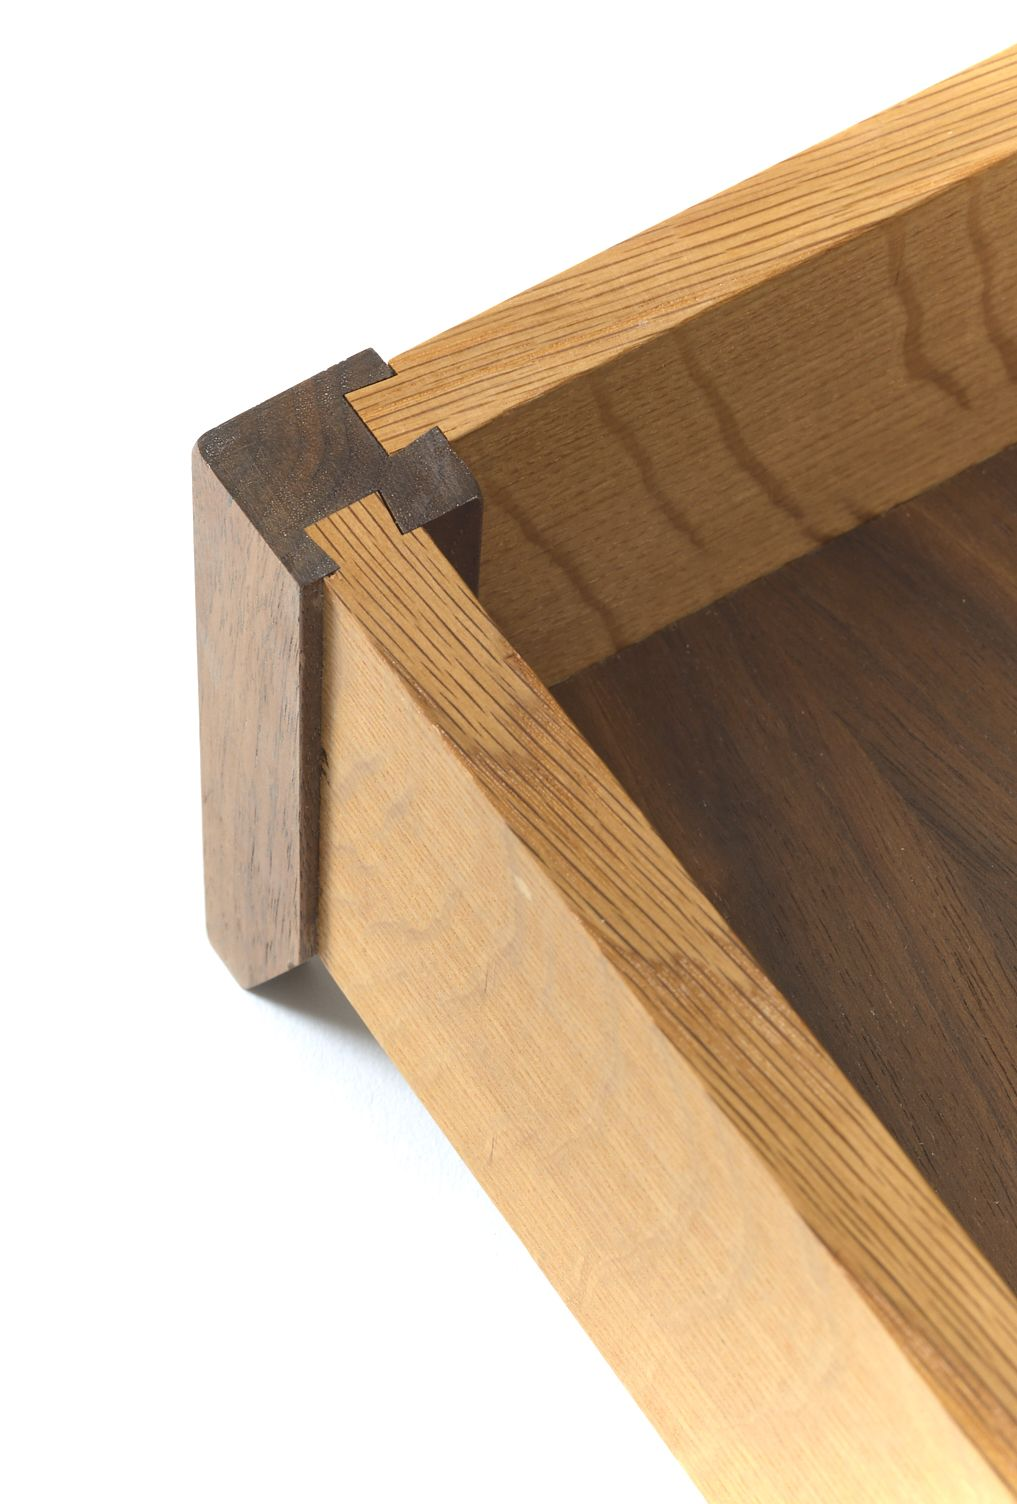 Sliding Dovetails To Join The Box Sides To The Legs In 2019